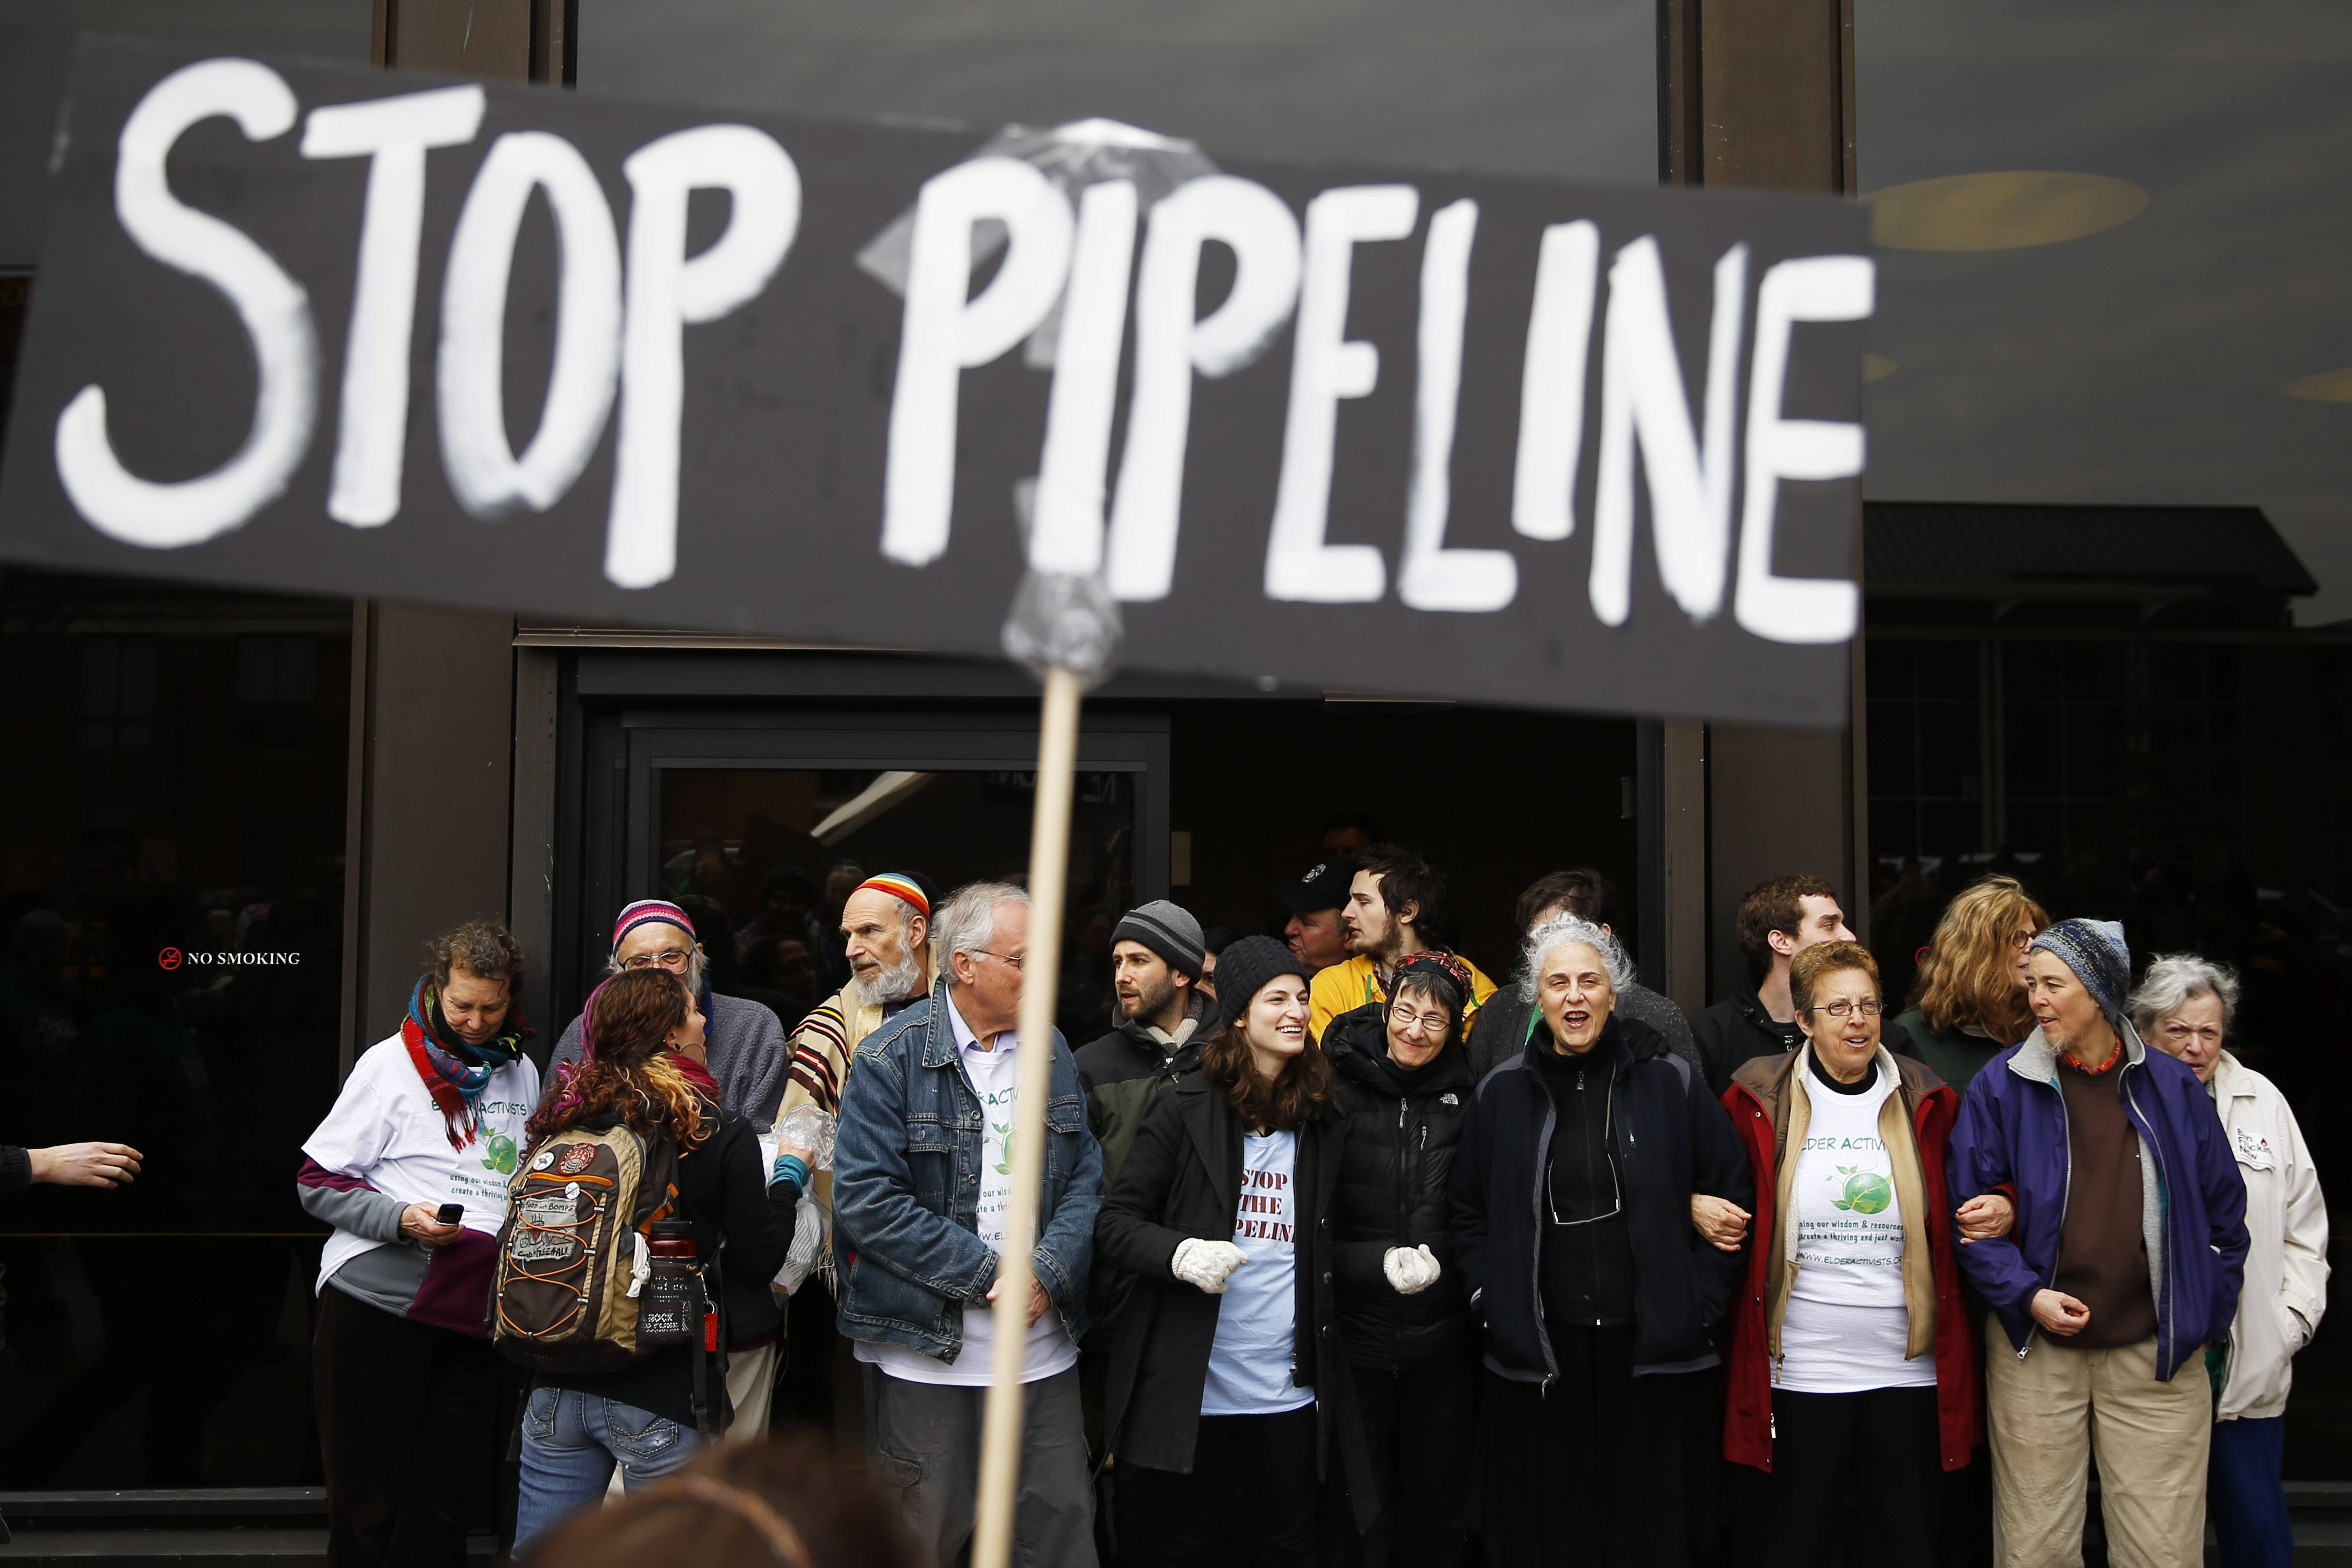 Protesters demonstrating in opposition to the proposed Keystone XL oil pipeline Monday block the door to the federal building in Philadelphia. The protestors said the pipeline would contribute to global warming.